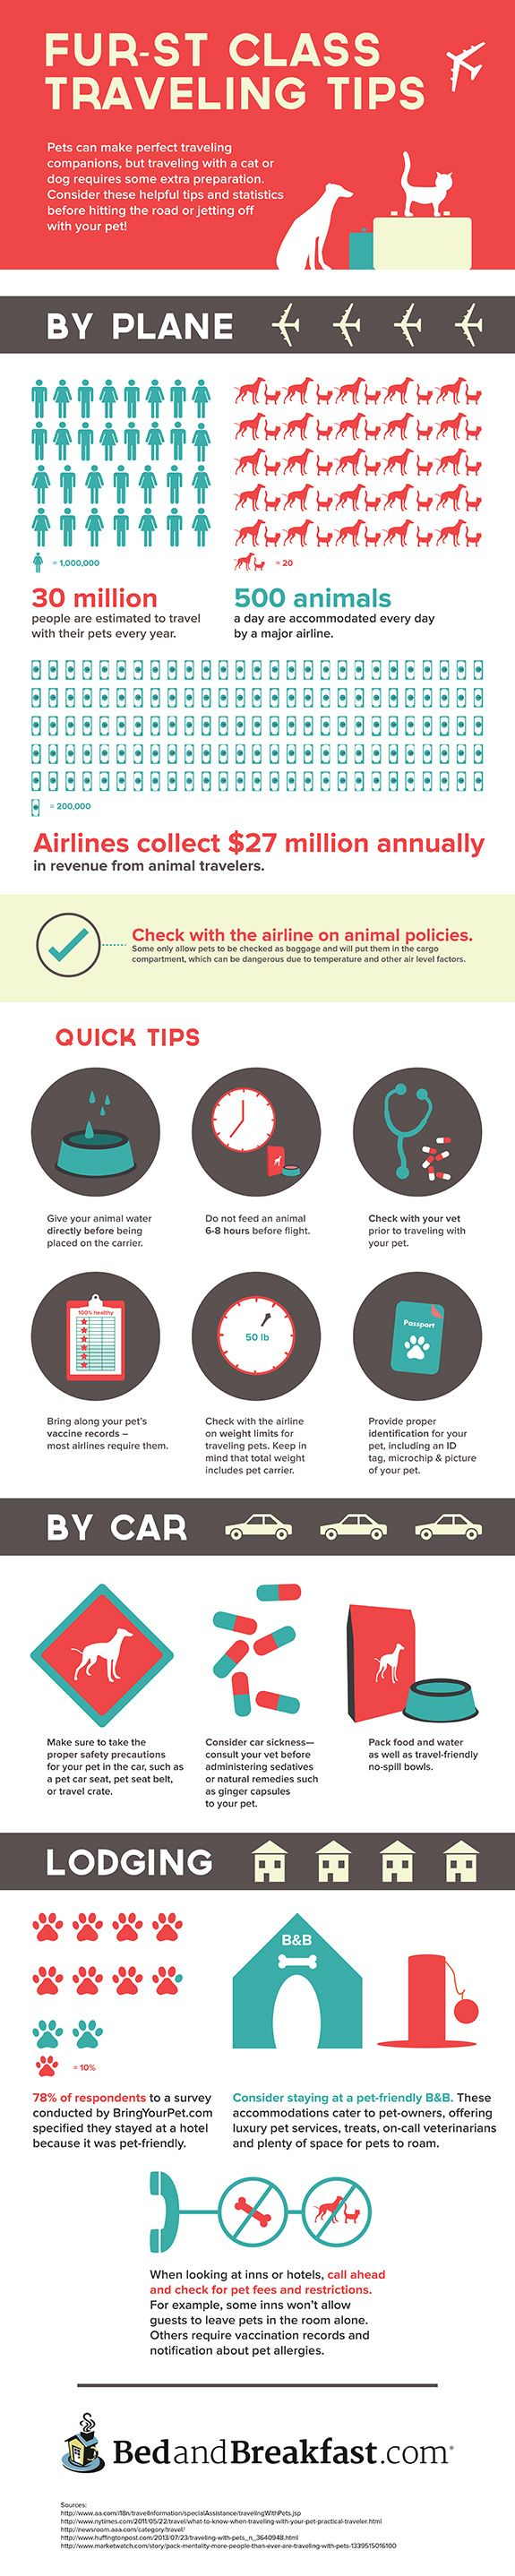 Travel with Your Pet: Tips to Hit the Road with Your Furry Companion - Tipsographic